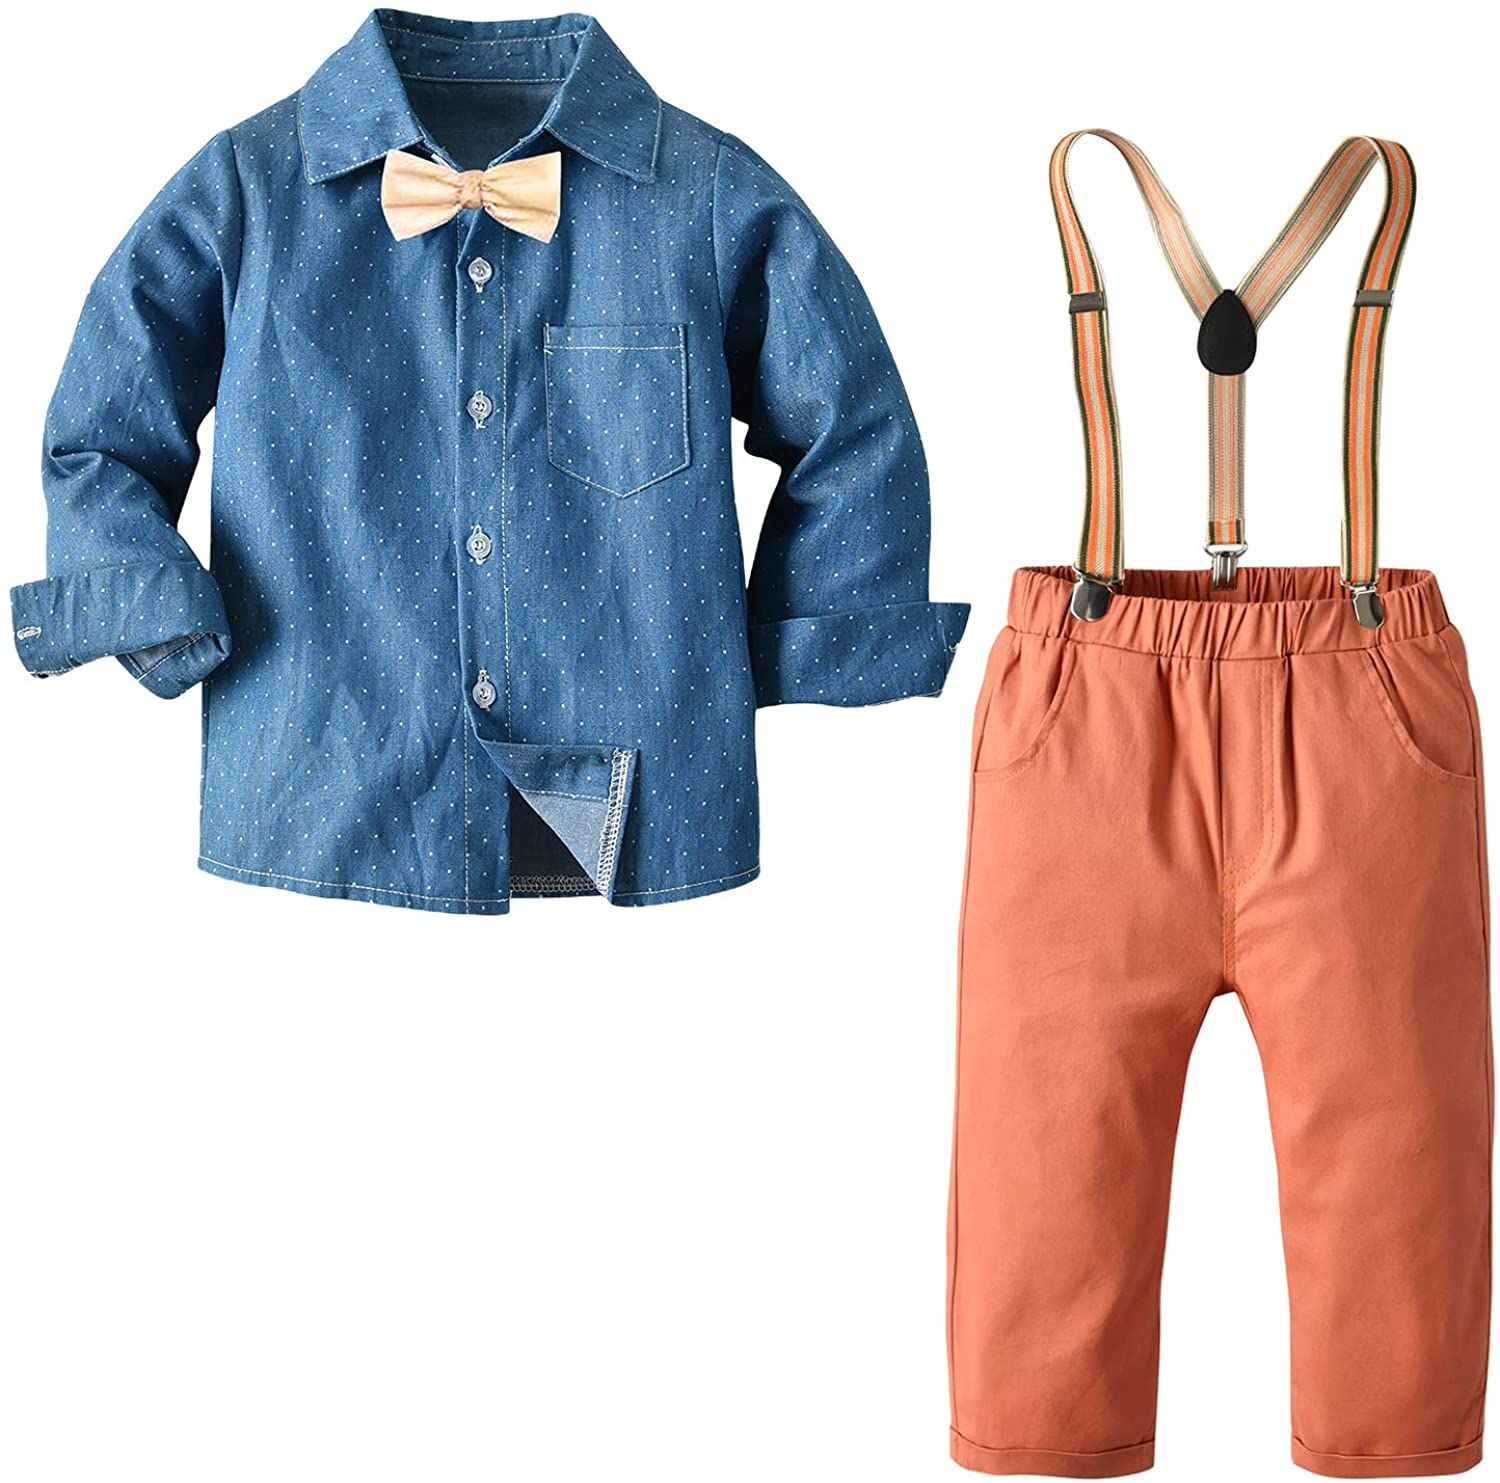 Autumn Boys Clothes Sets Toddler Boy Outfits Bow Ties Shirts + Suspenders Pants Gentleman Suits